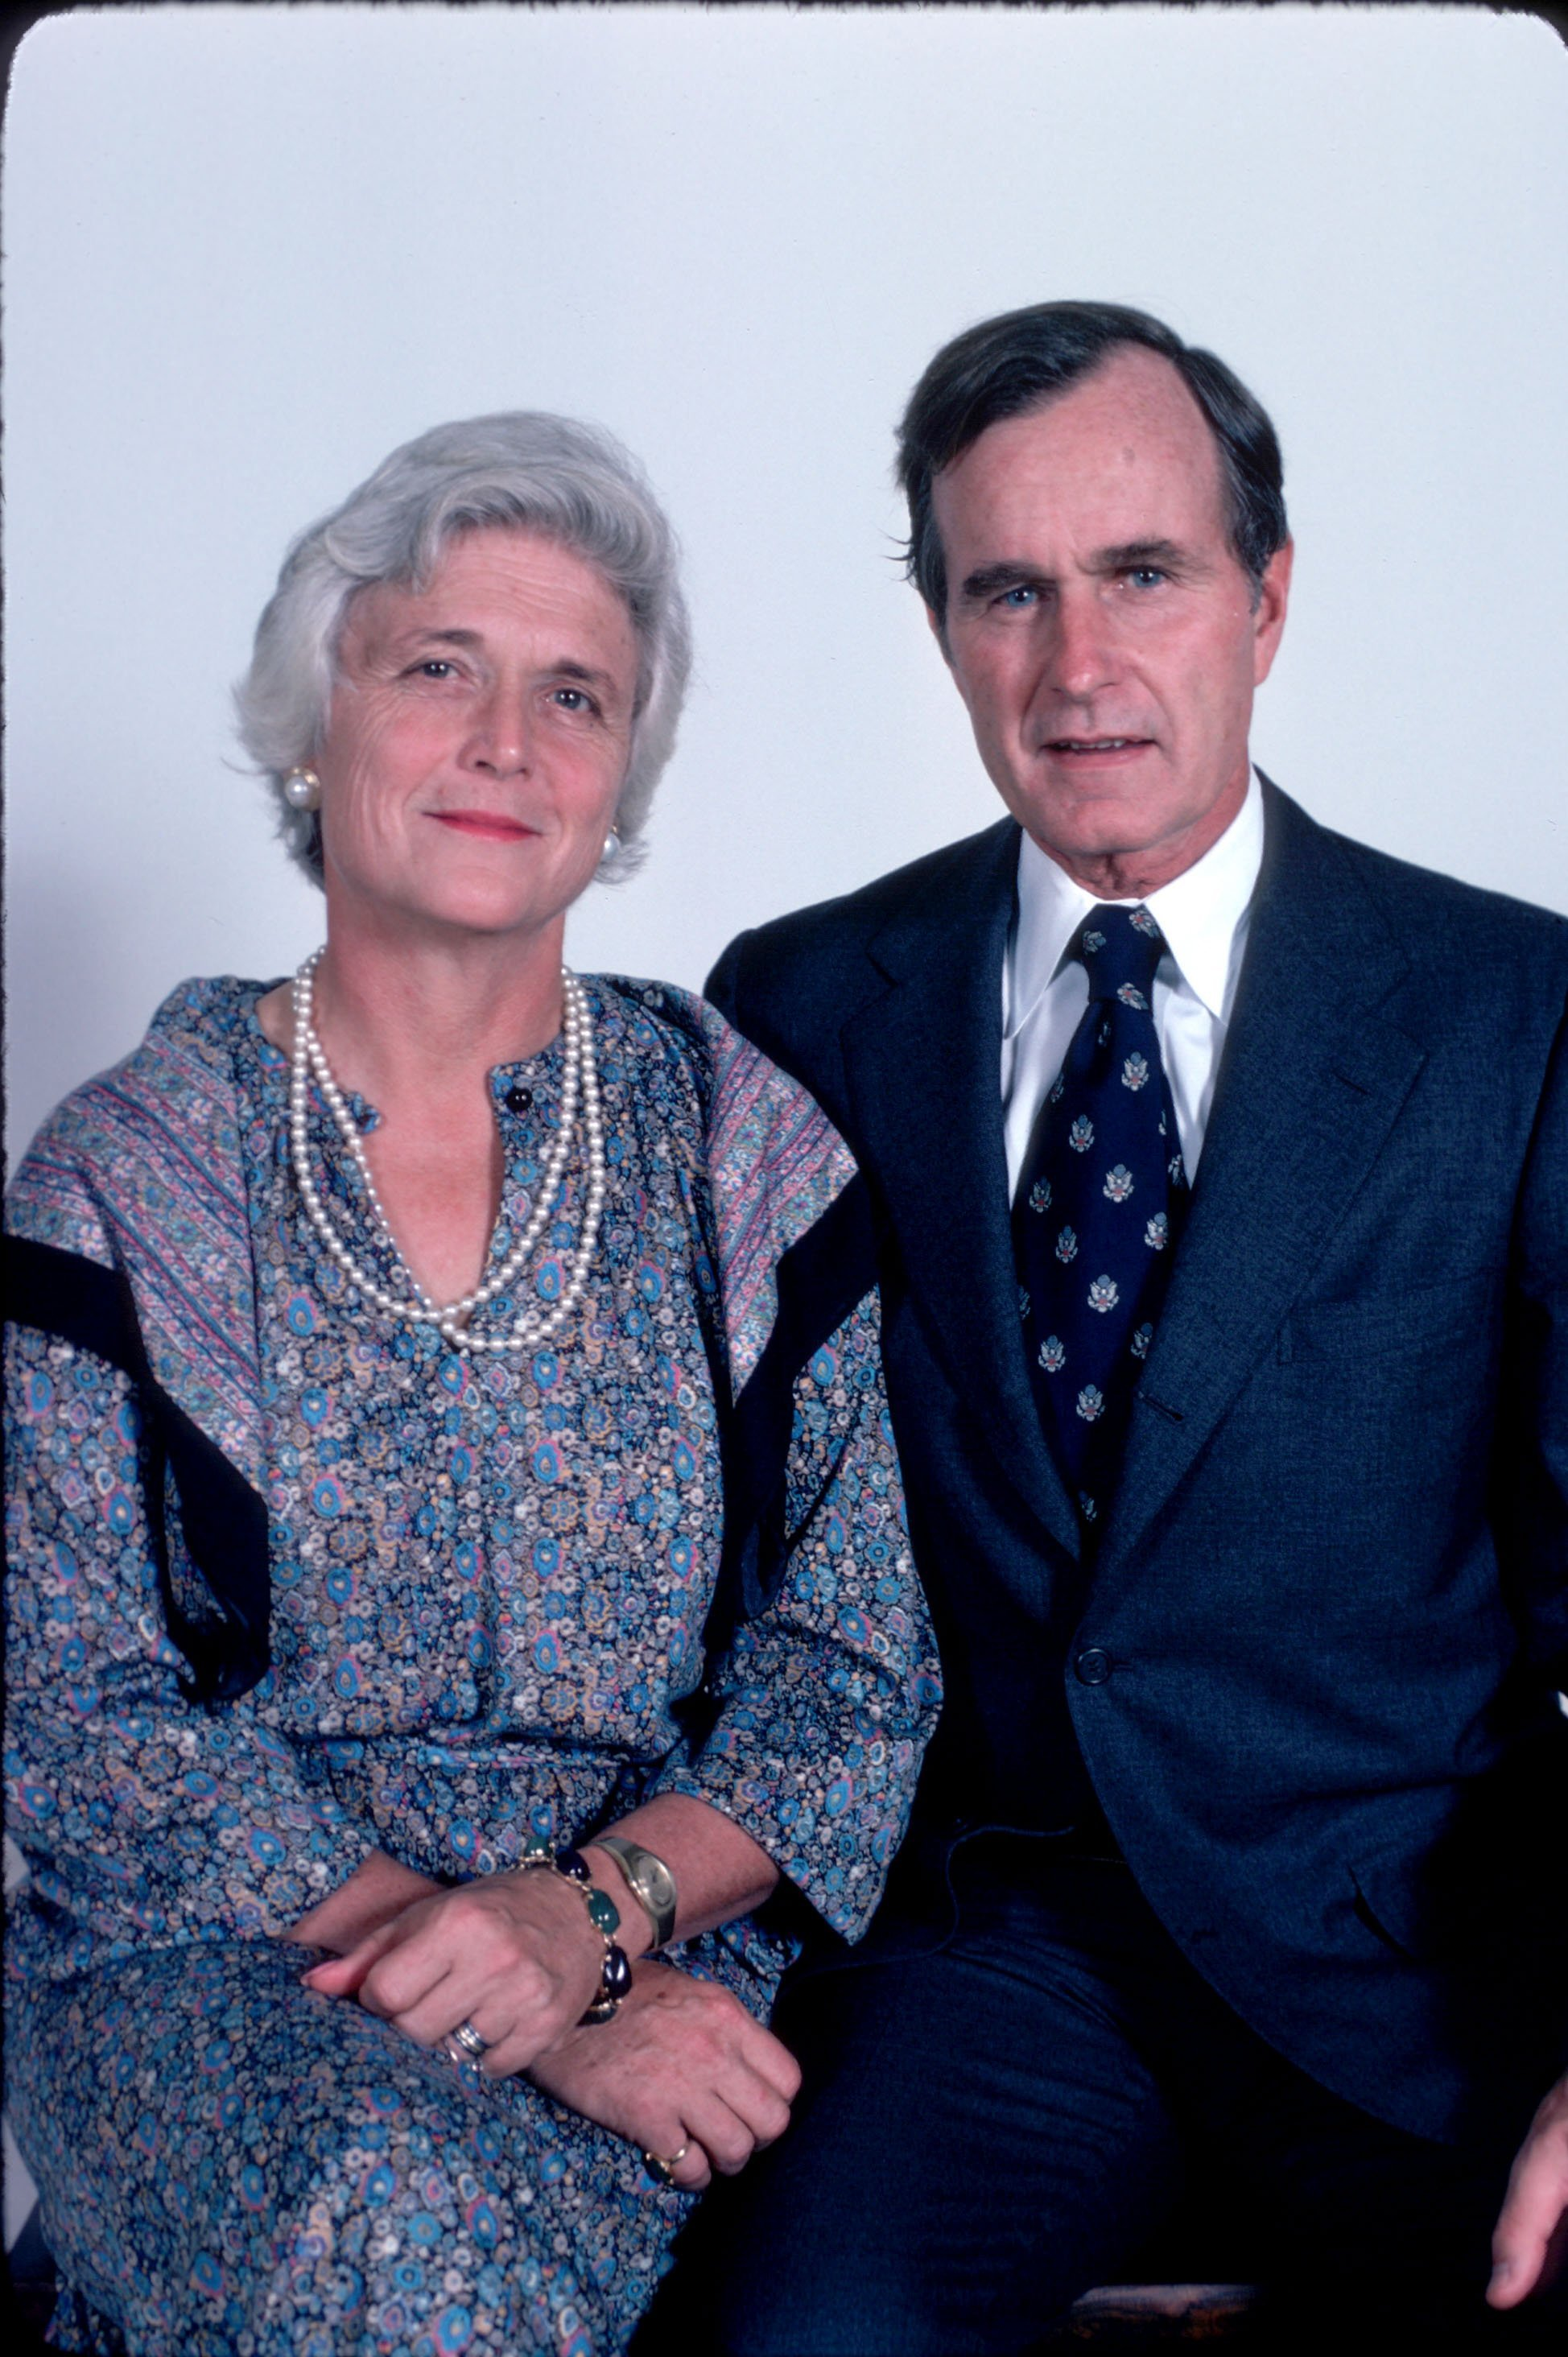 Barbara and George Bush. I Image: Getty Images.